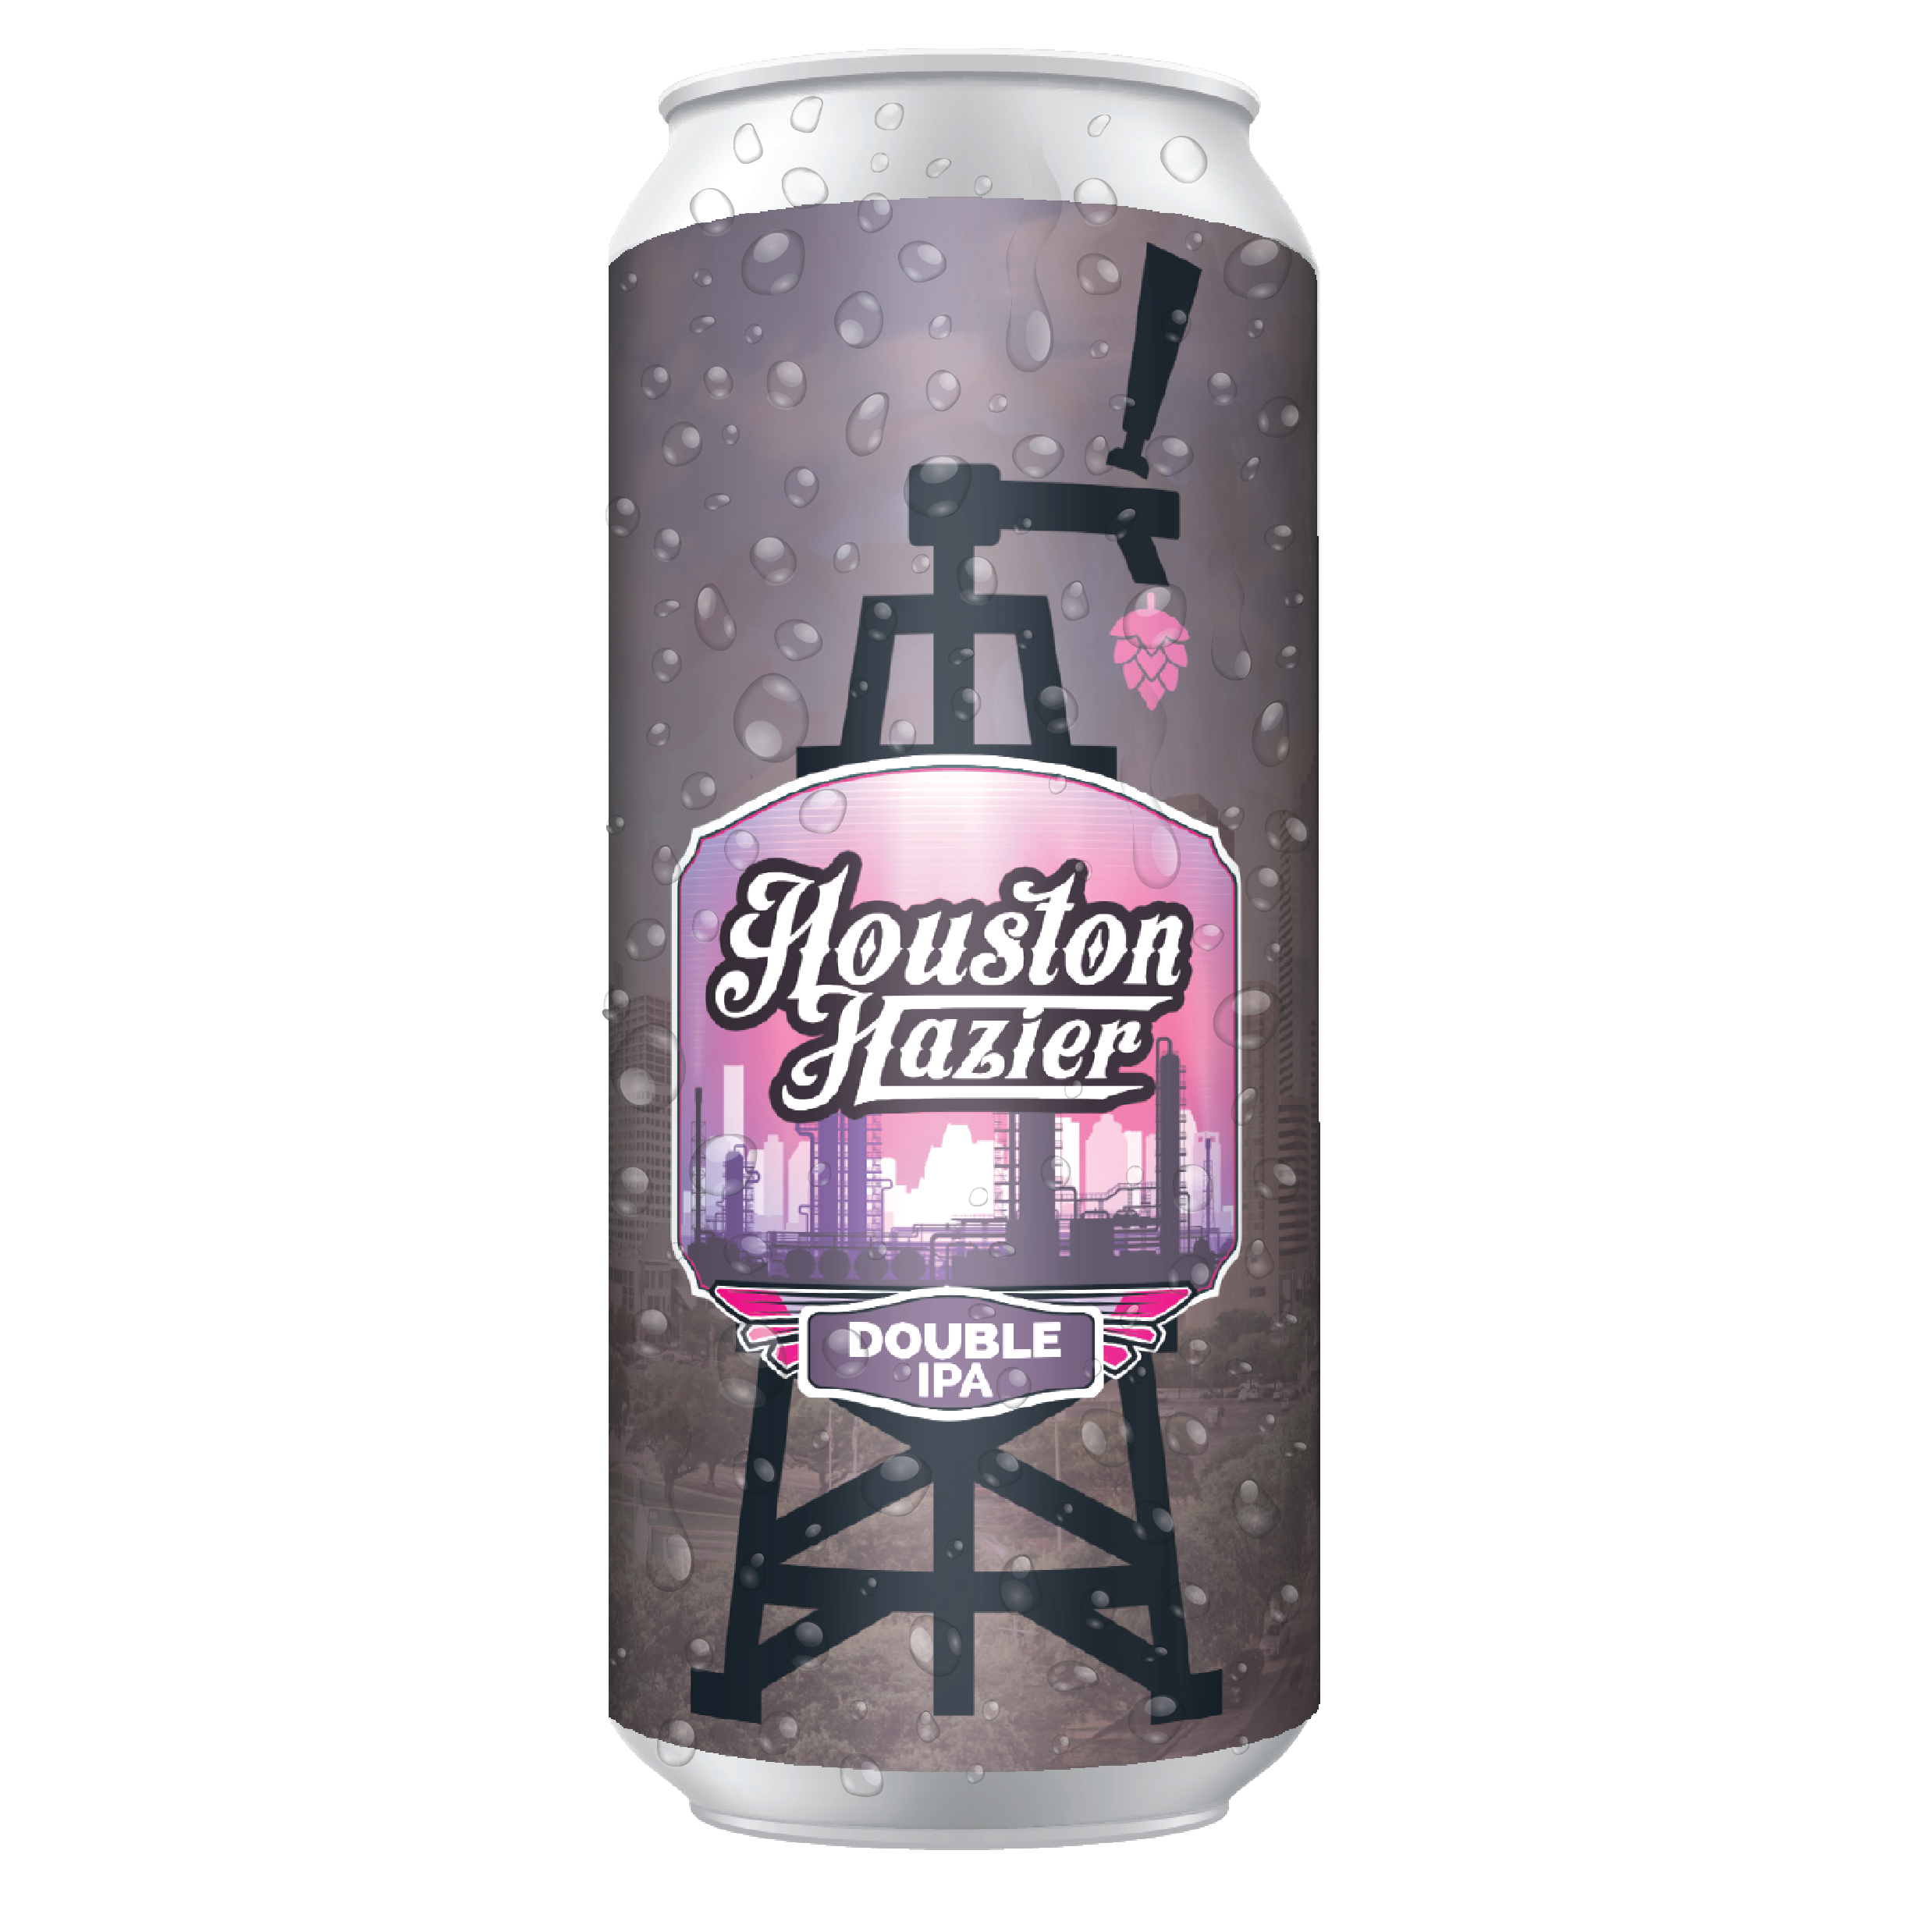 Houston Hazier - Double IPA